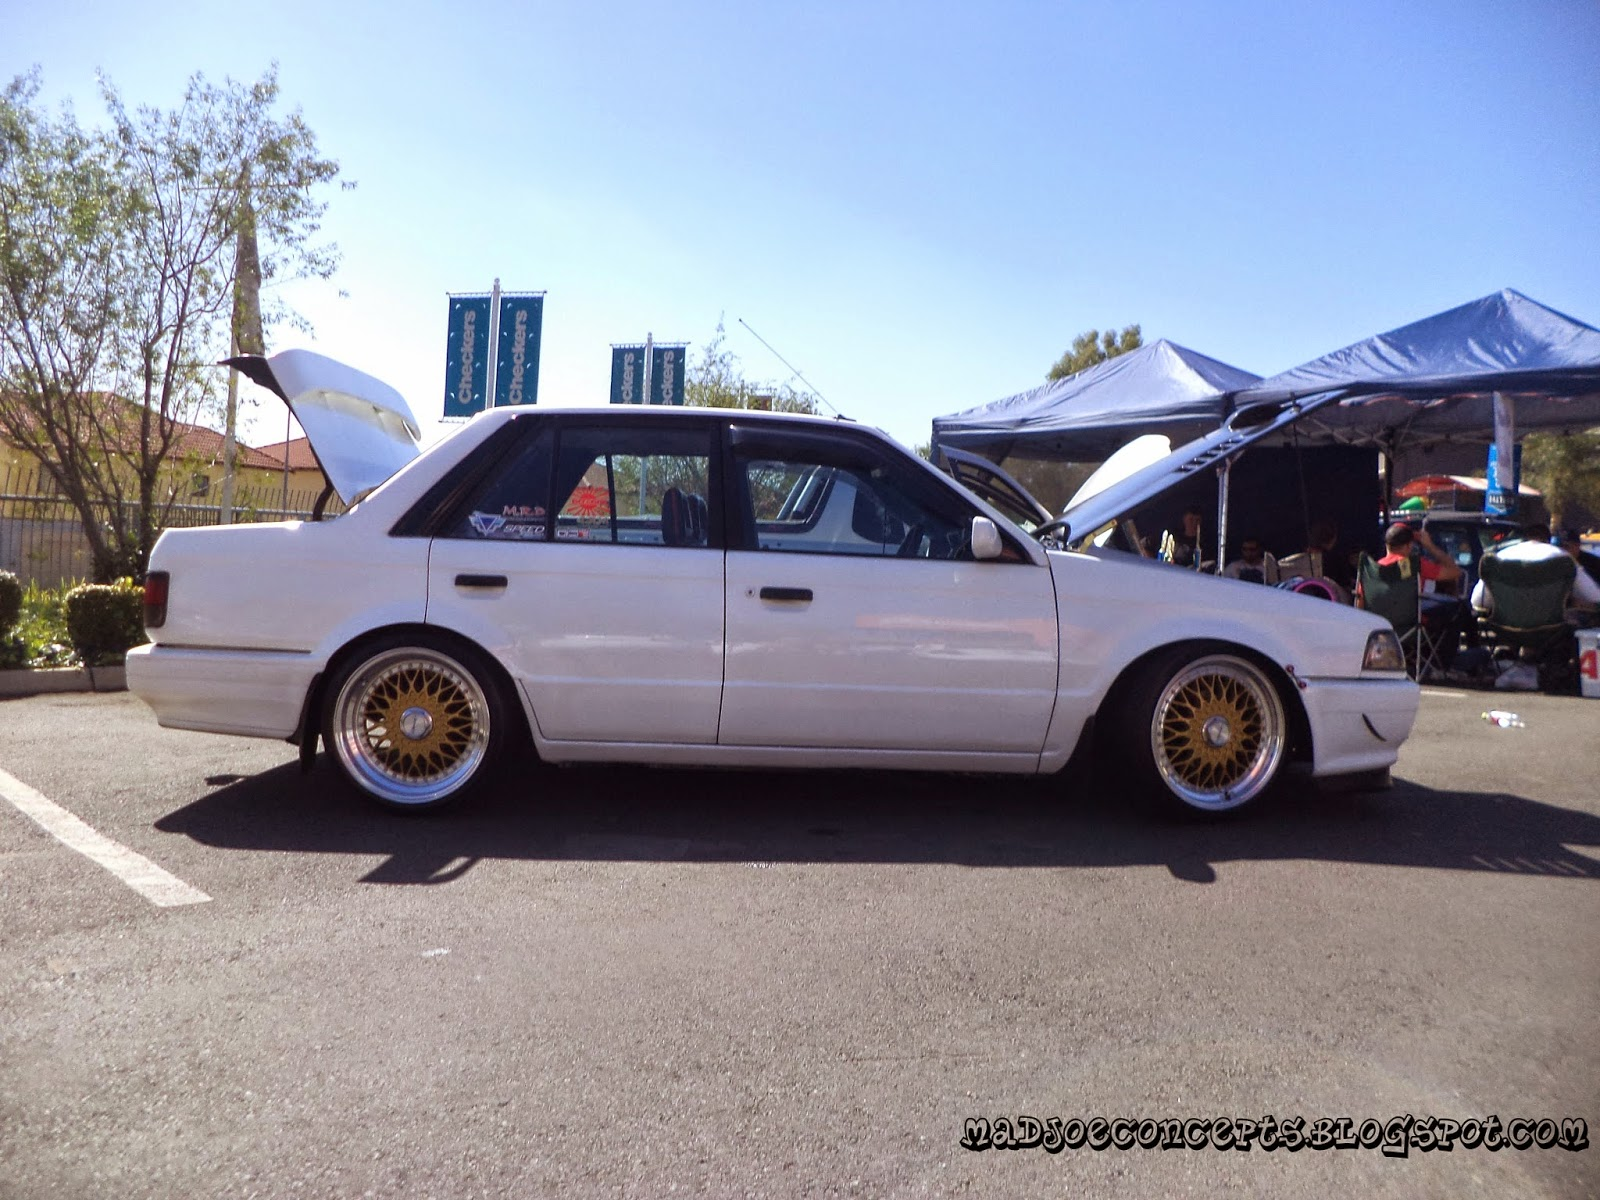 Madjoe Concepts Car Candy Inc Crew Battles 2015 Corolla Rxi 20v Modified Cars Pictures Not So Threatening From The Side Looks Worked